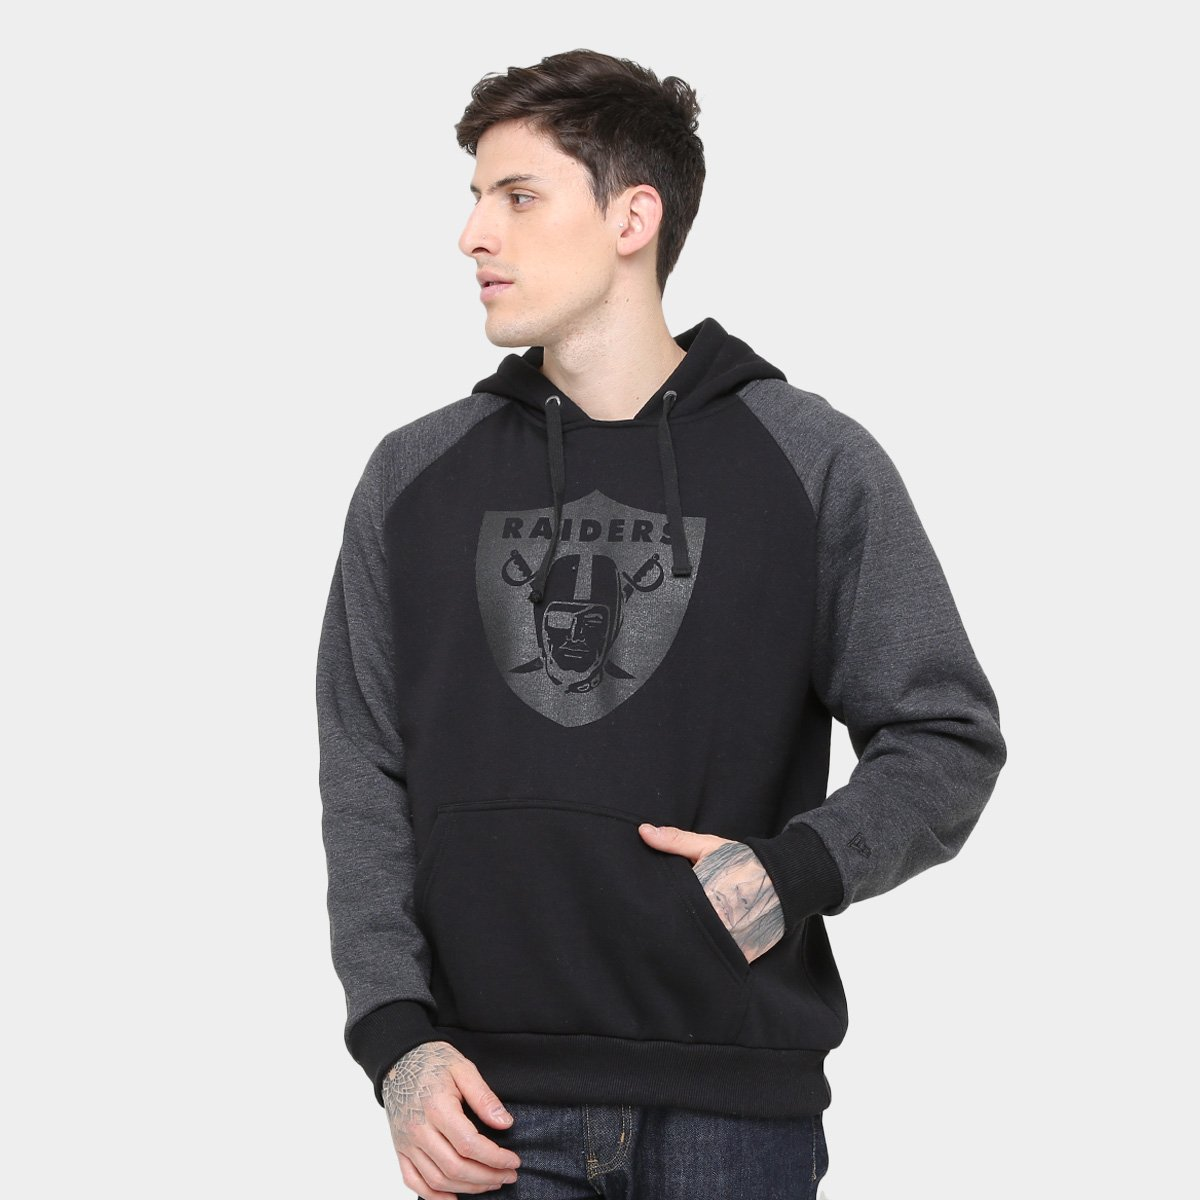 Moletom Oakland Raiders New Era Mescla Raglan Masculino